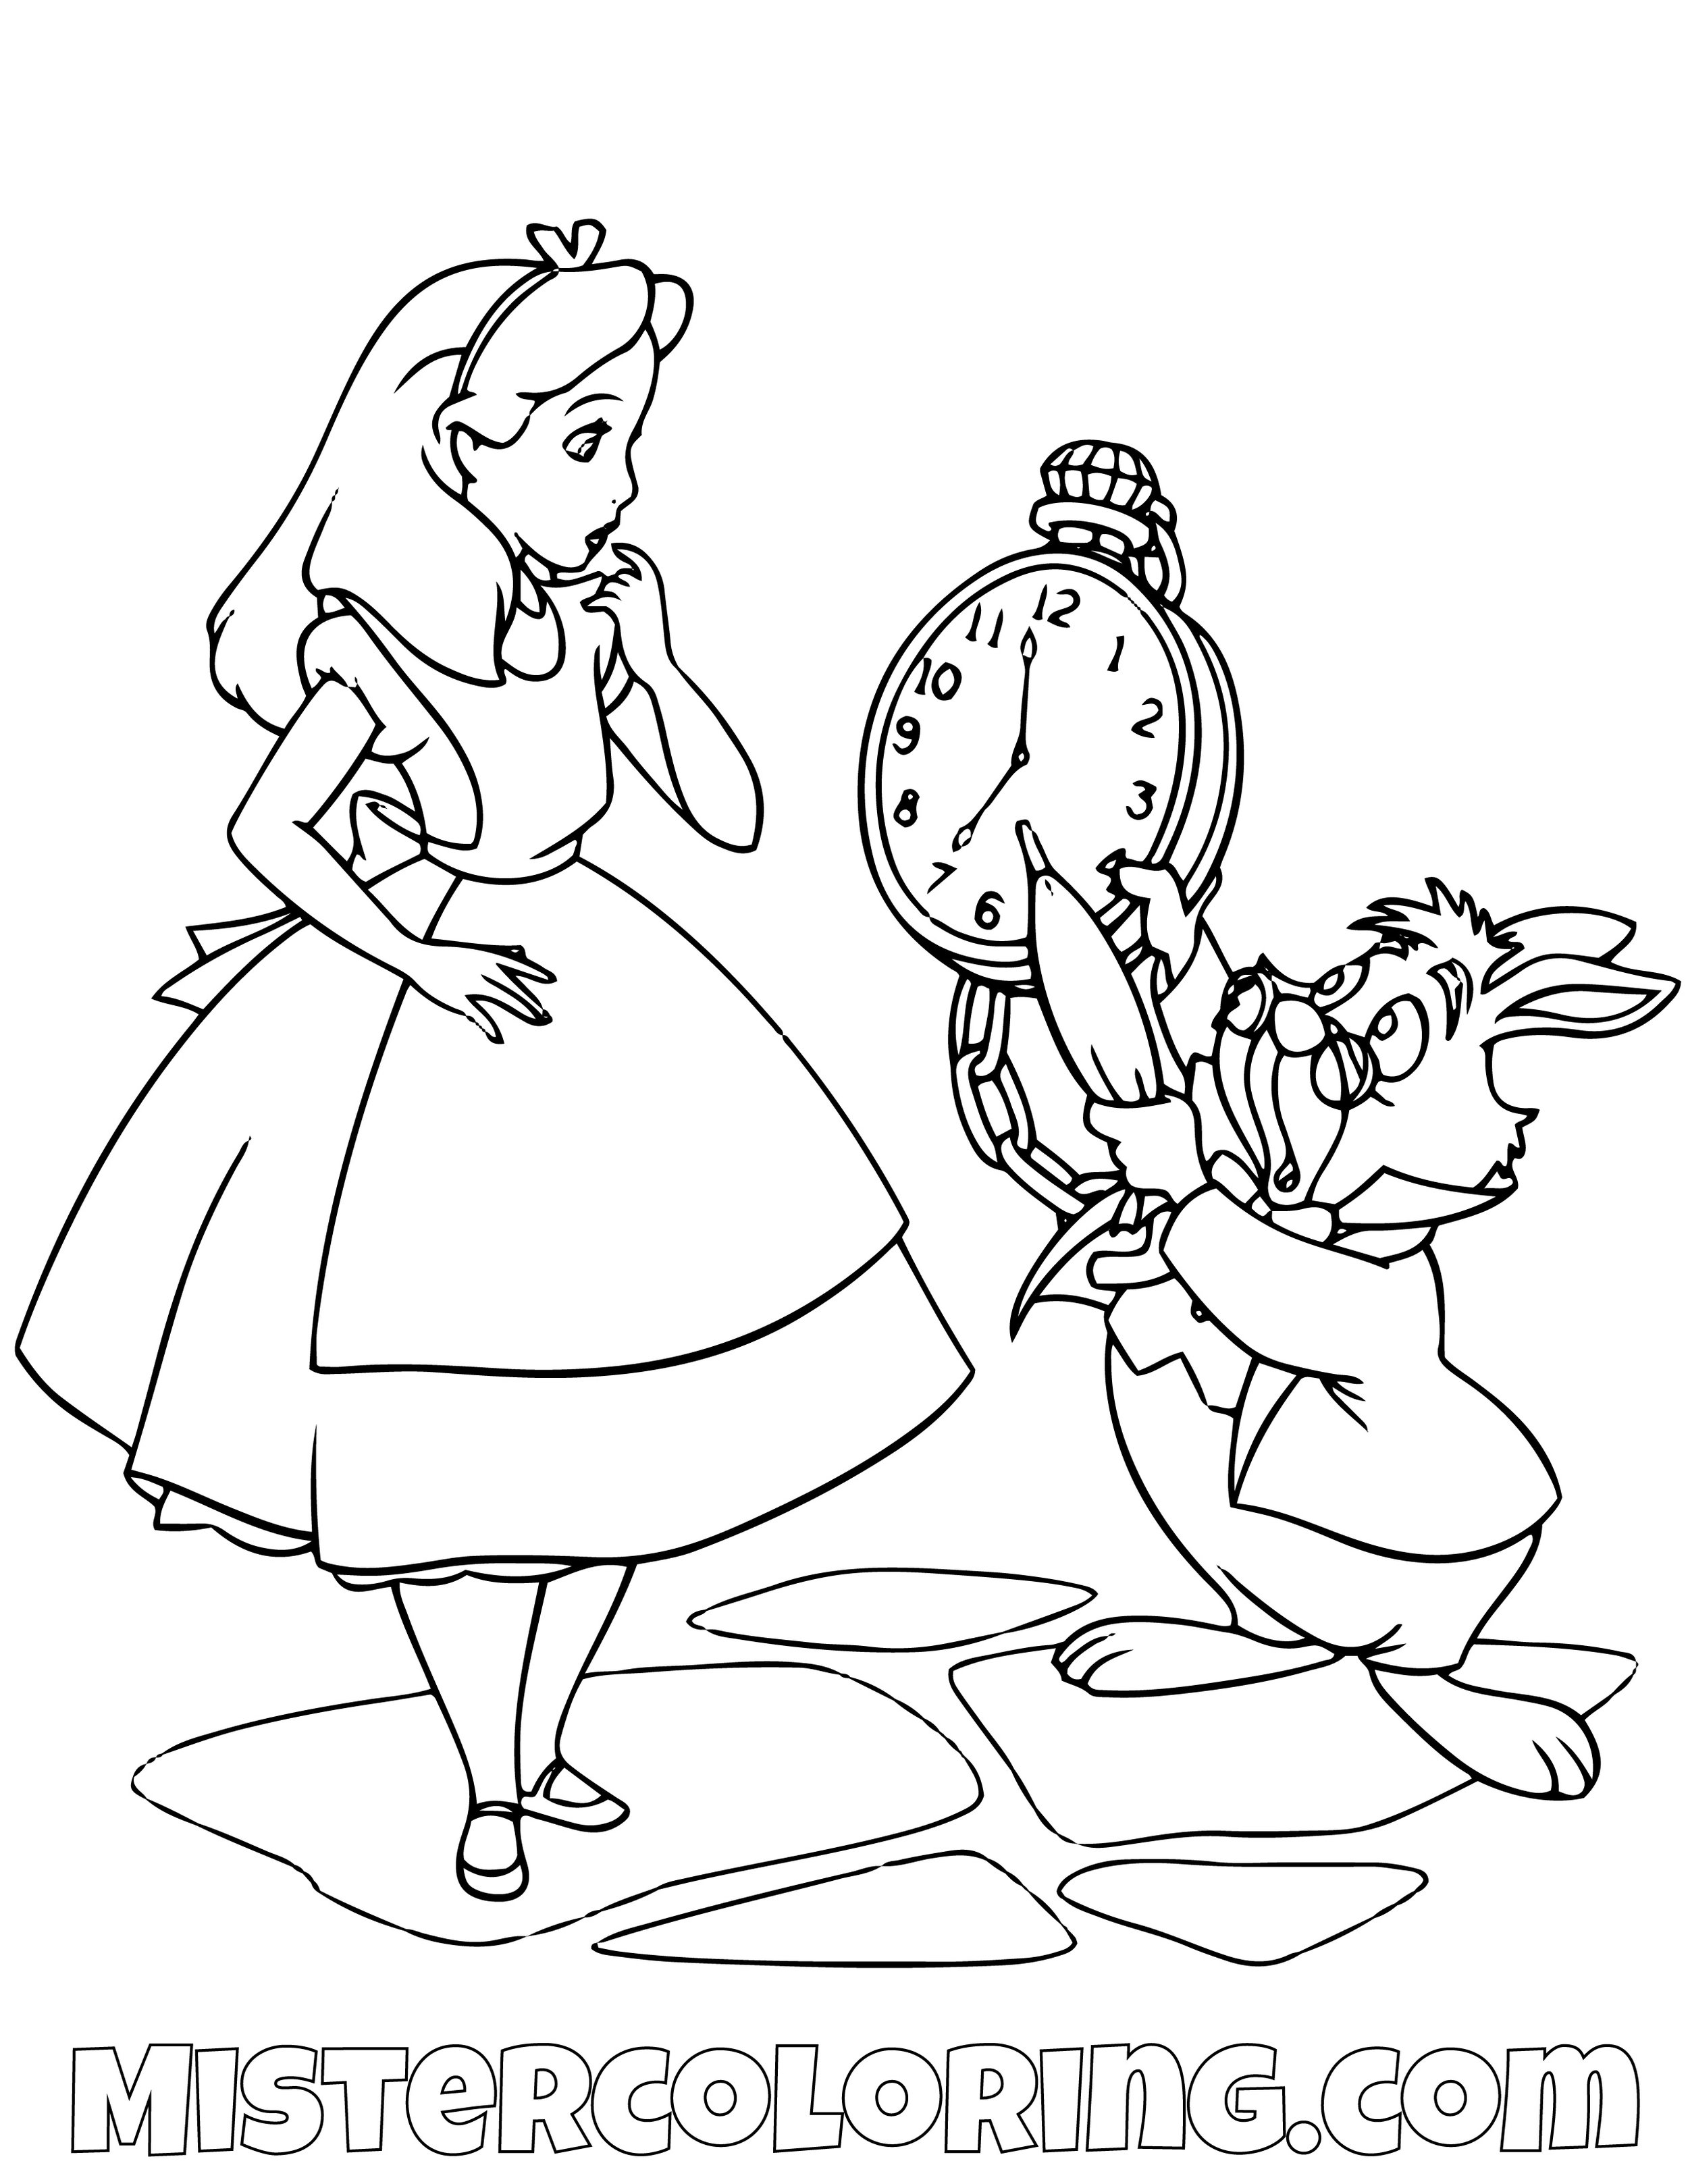 Alice In Wonderland Coloring Page 12 Coloring Page - Free Alice in ... | 1294x1000